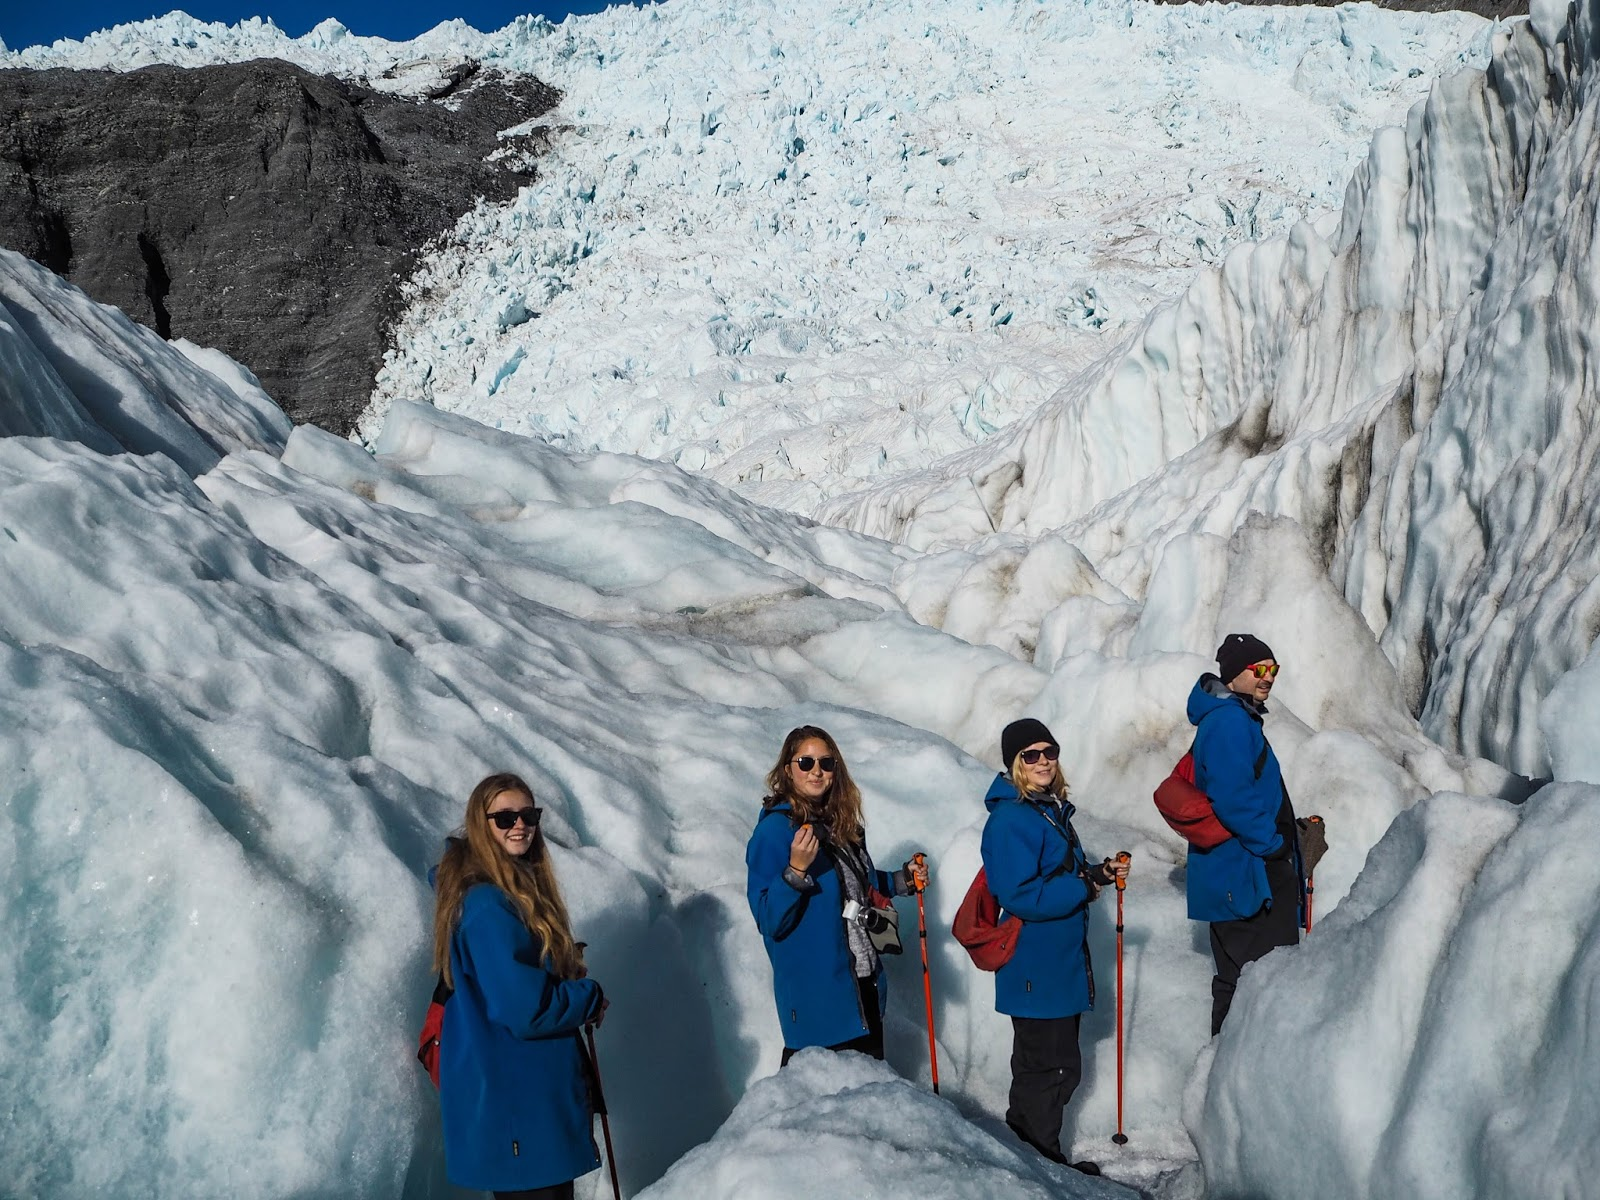 Hiking on Franz Josef Glacier, New Zealand